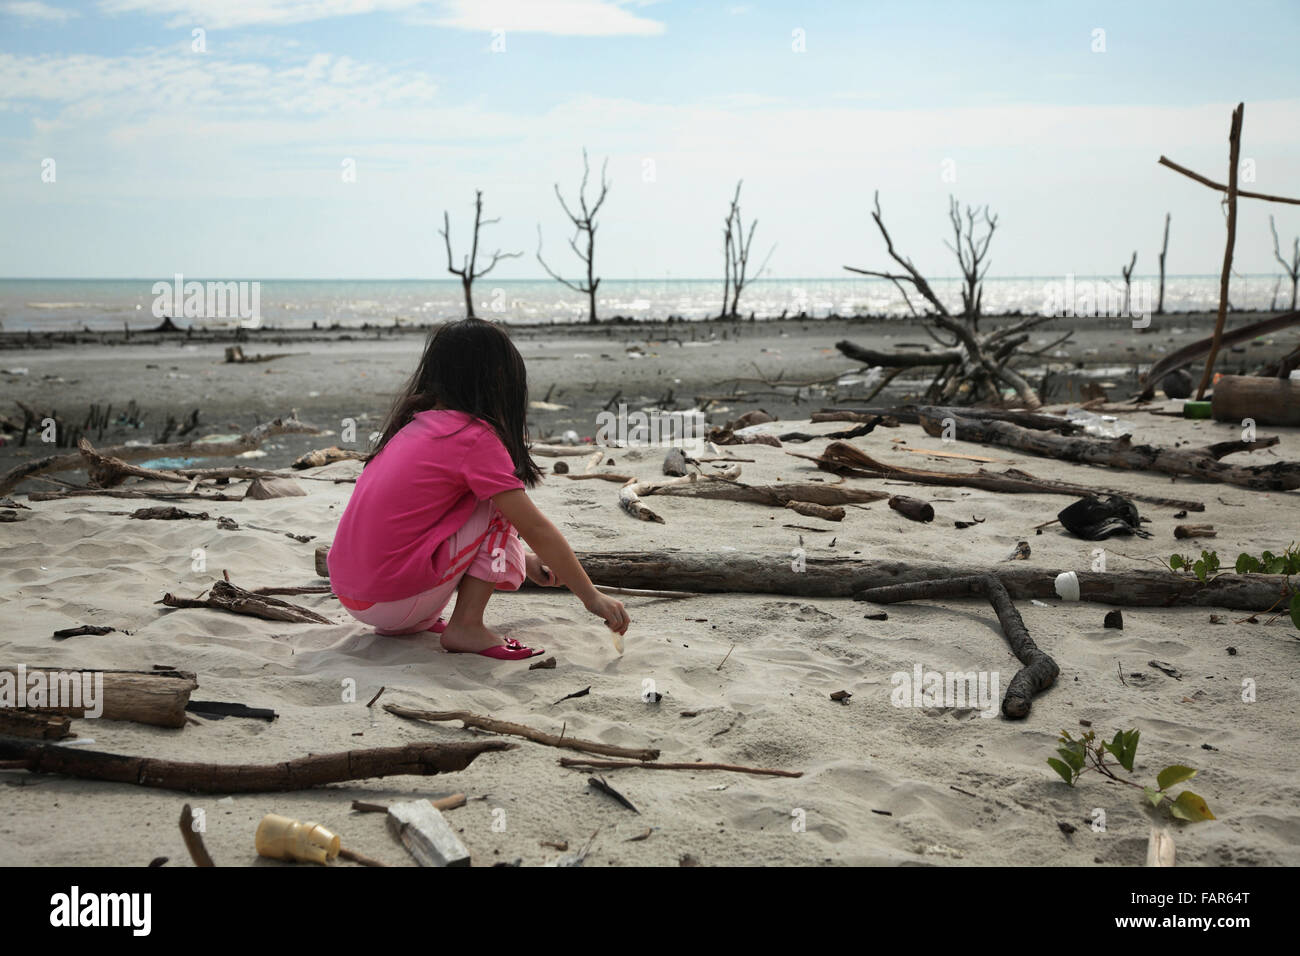 child playing at the polluted beach - Stock Image